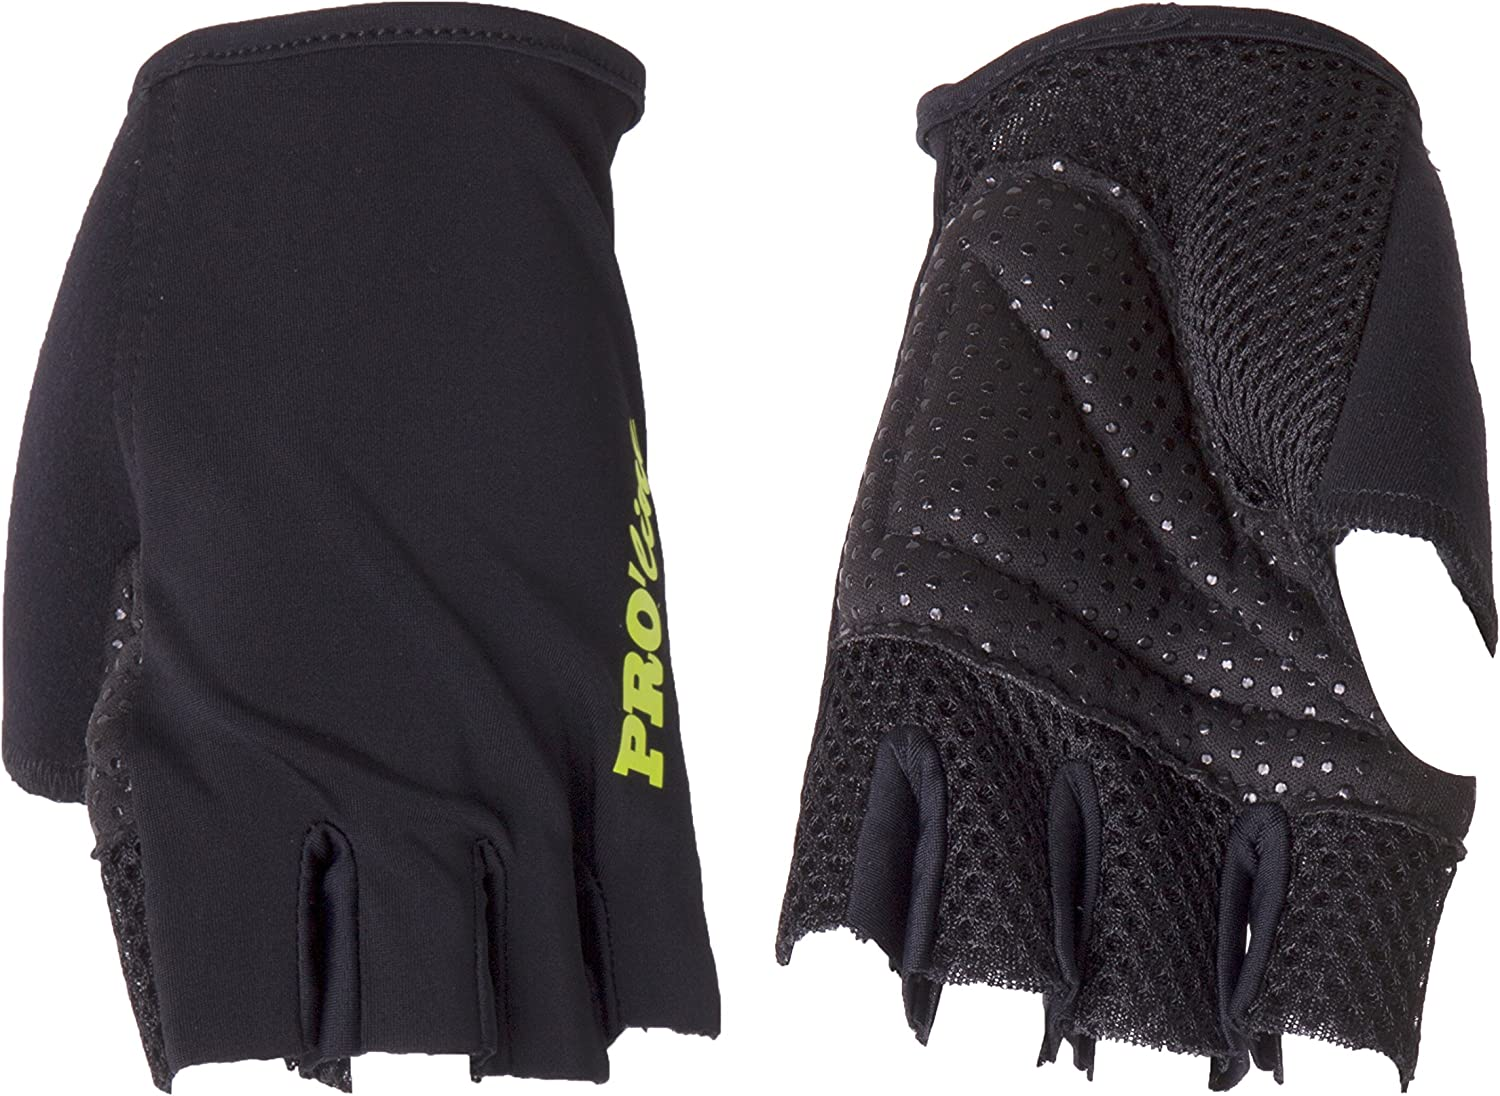 PRO/' line Guanti Ciclismo Bicicletta Invernali NERO Winter Cycling Gloves M L XL